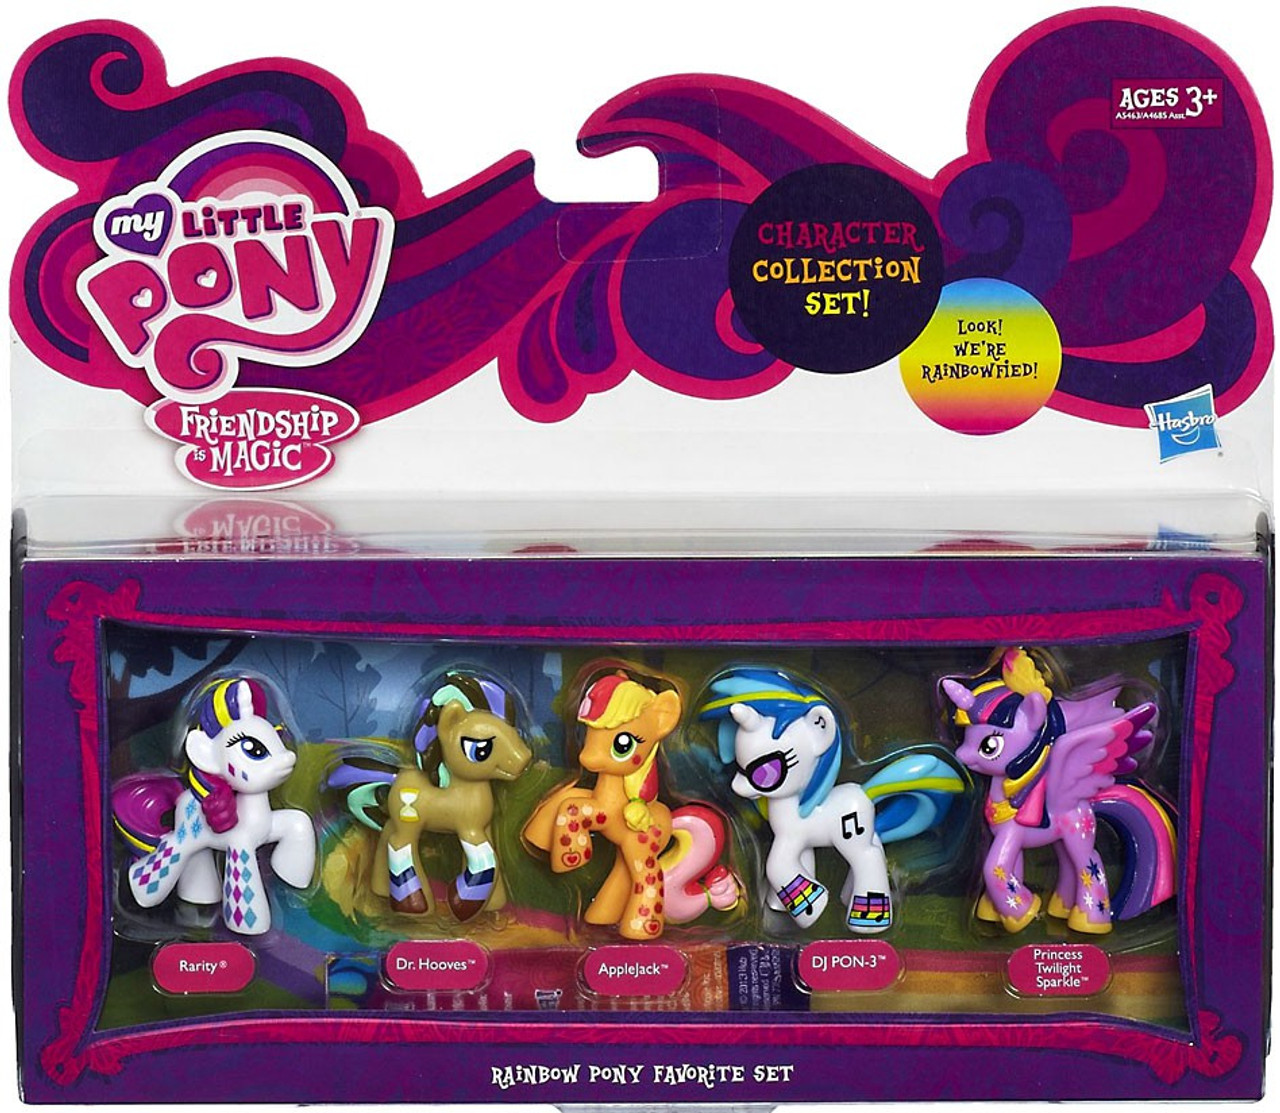 my little pony friendship is magic character collection